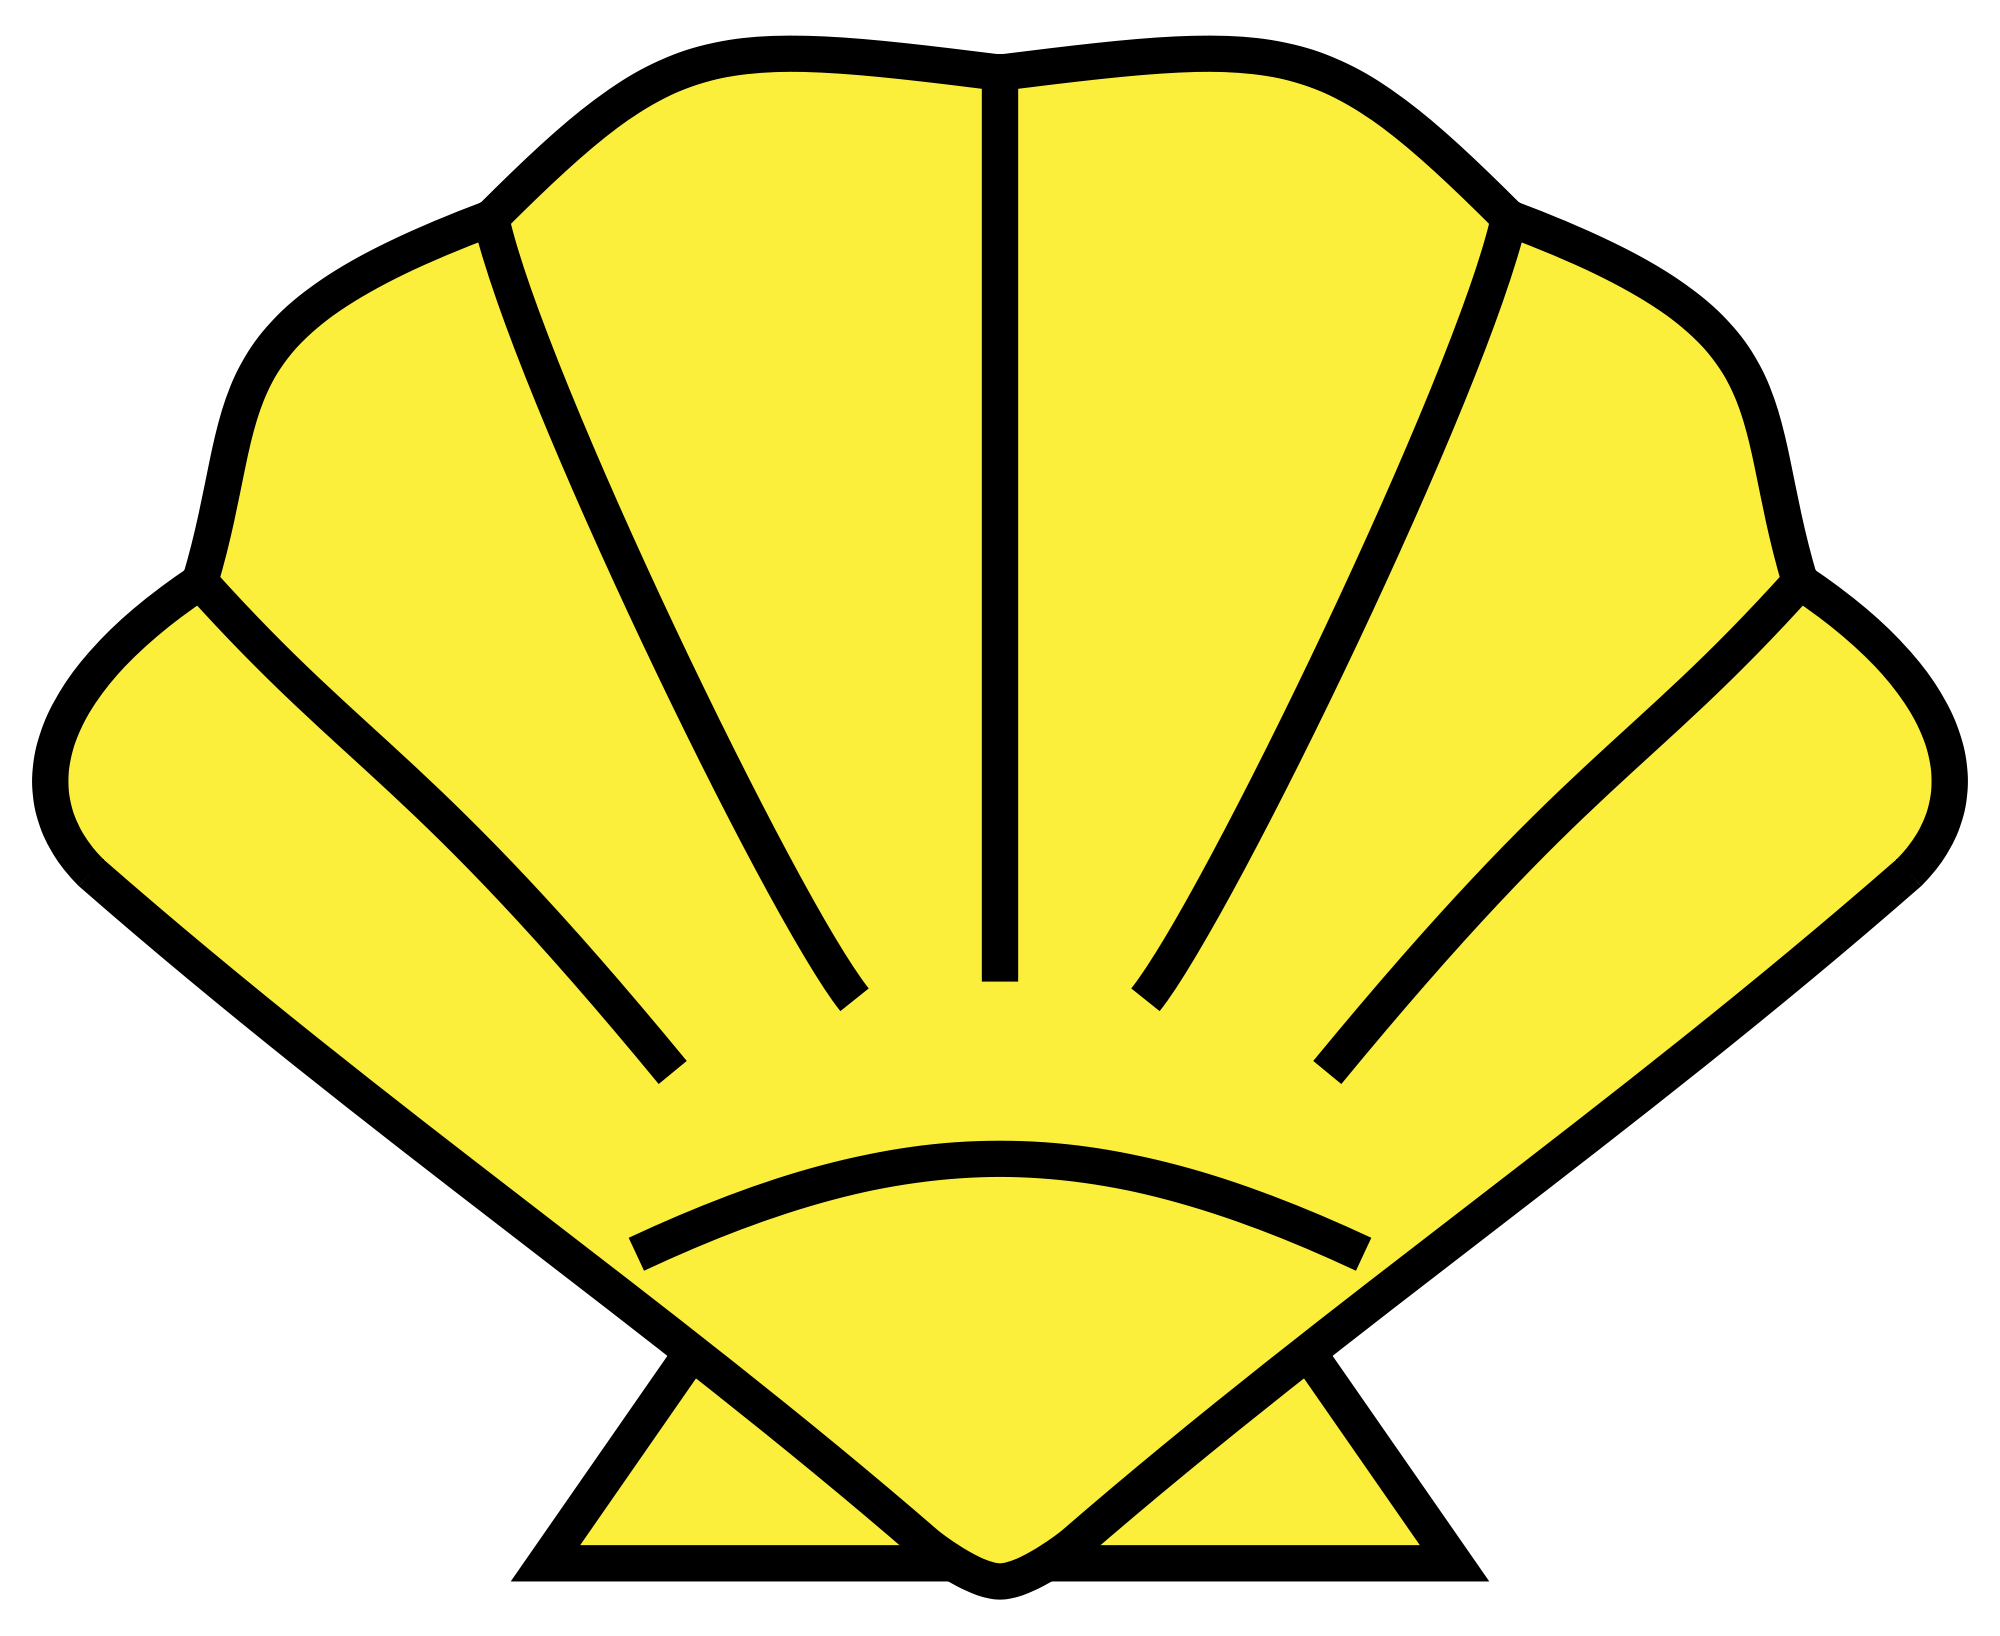 Shell svg #18, Download drawings